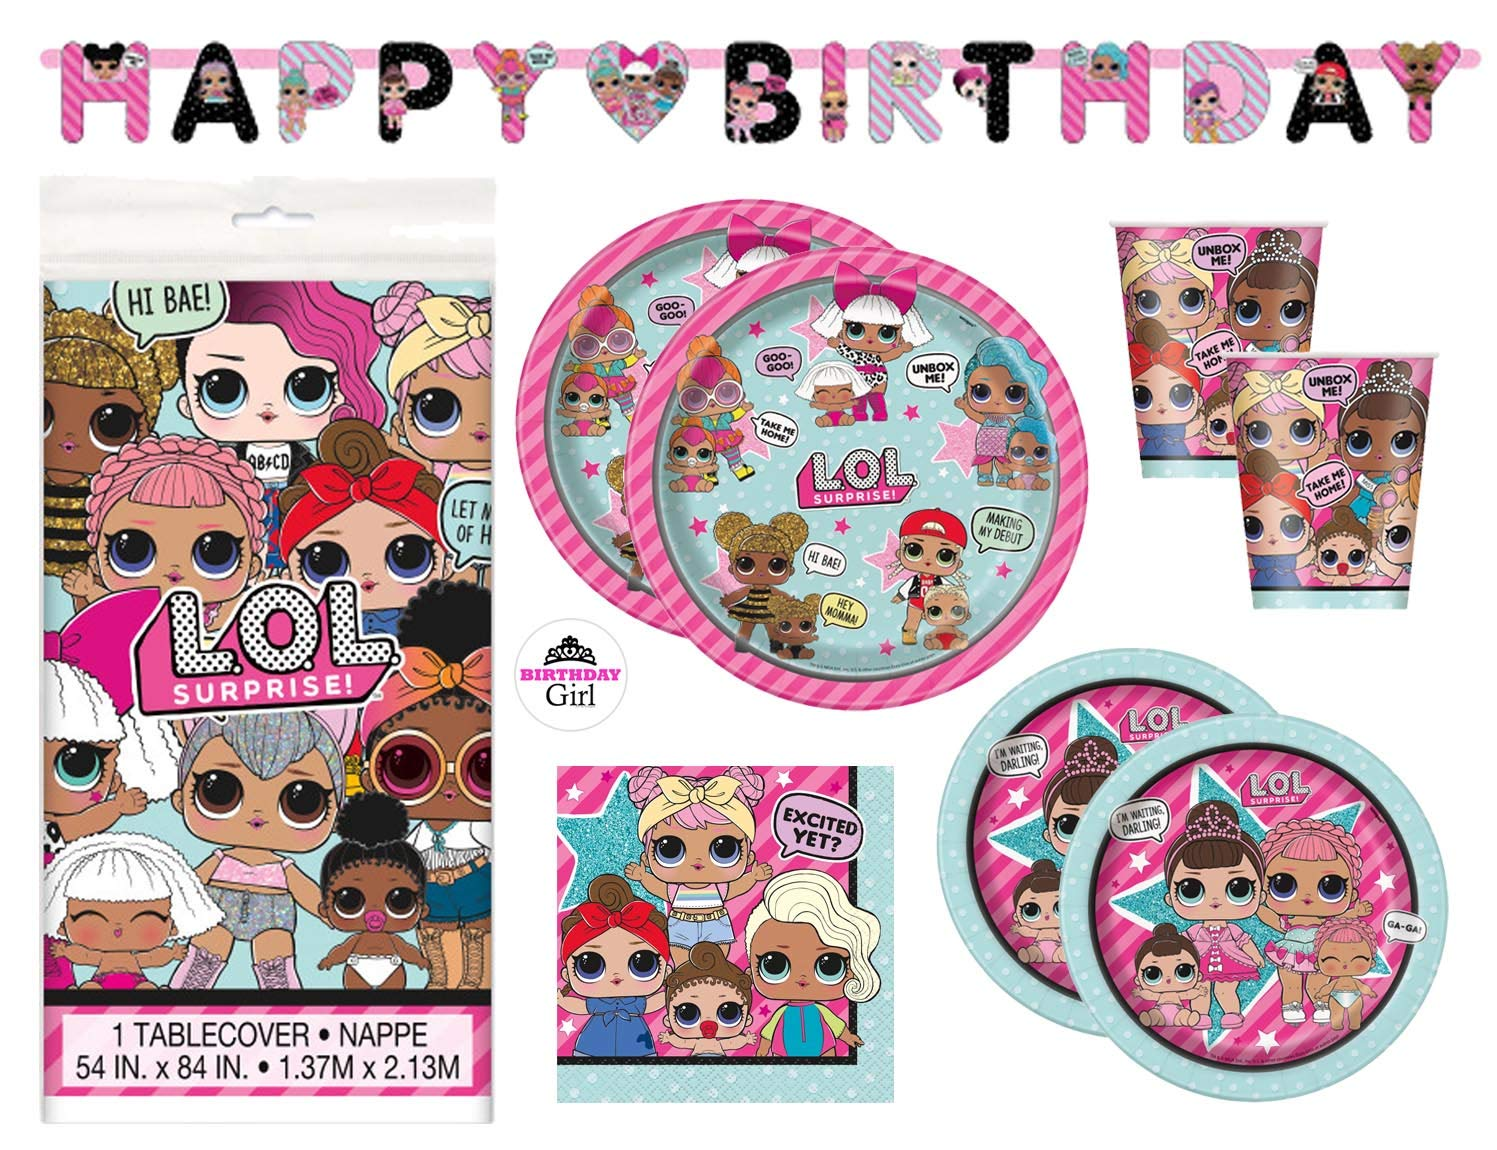 LOL Birthday Party Supplies Set - Dinner and Cake Plates, Cups, Napkins, Decorations (Deluxe with Banner - Serves 16) by L.O.L. Surprise!